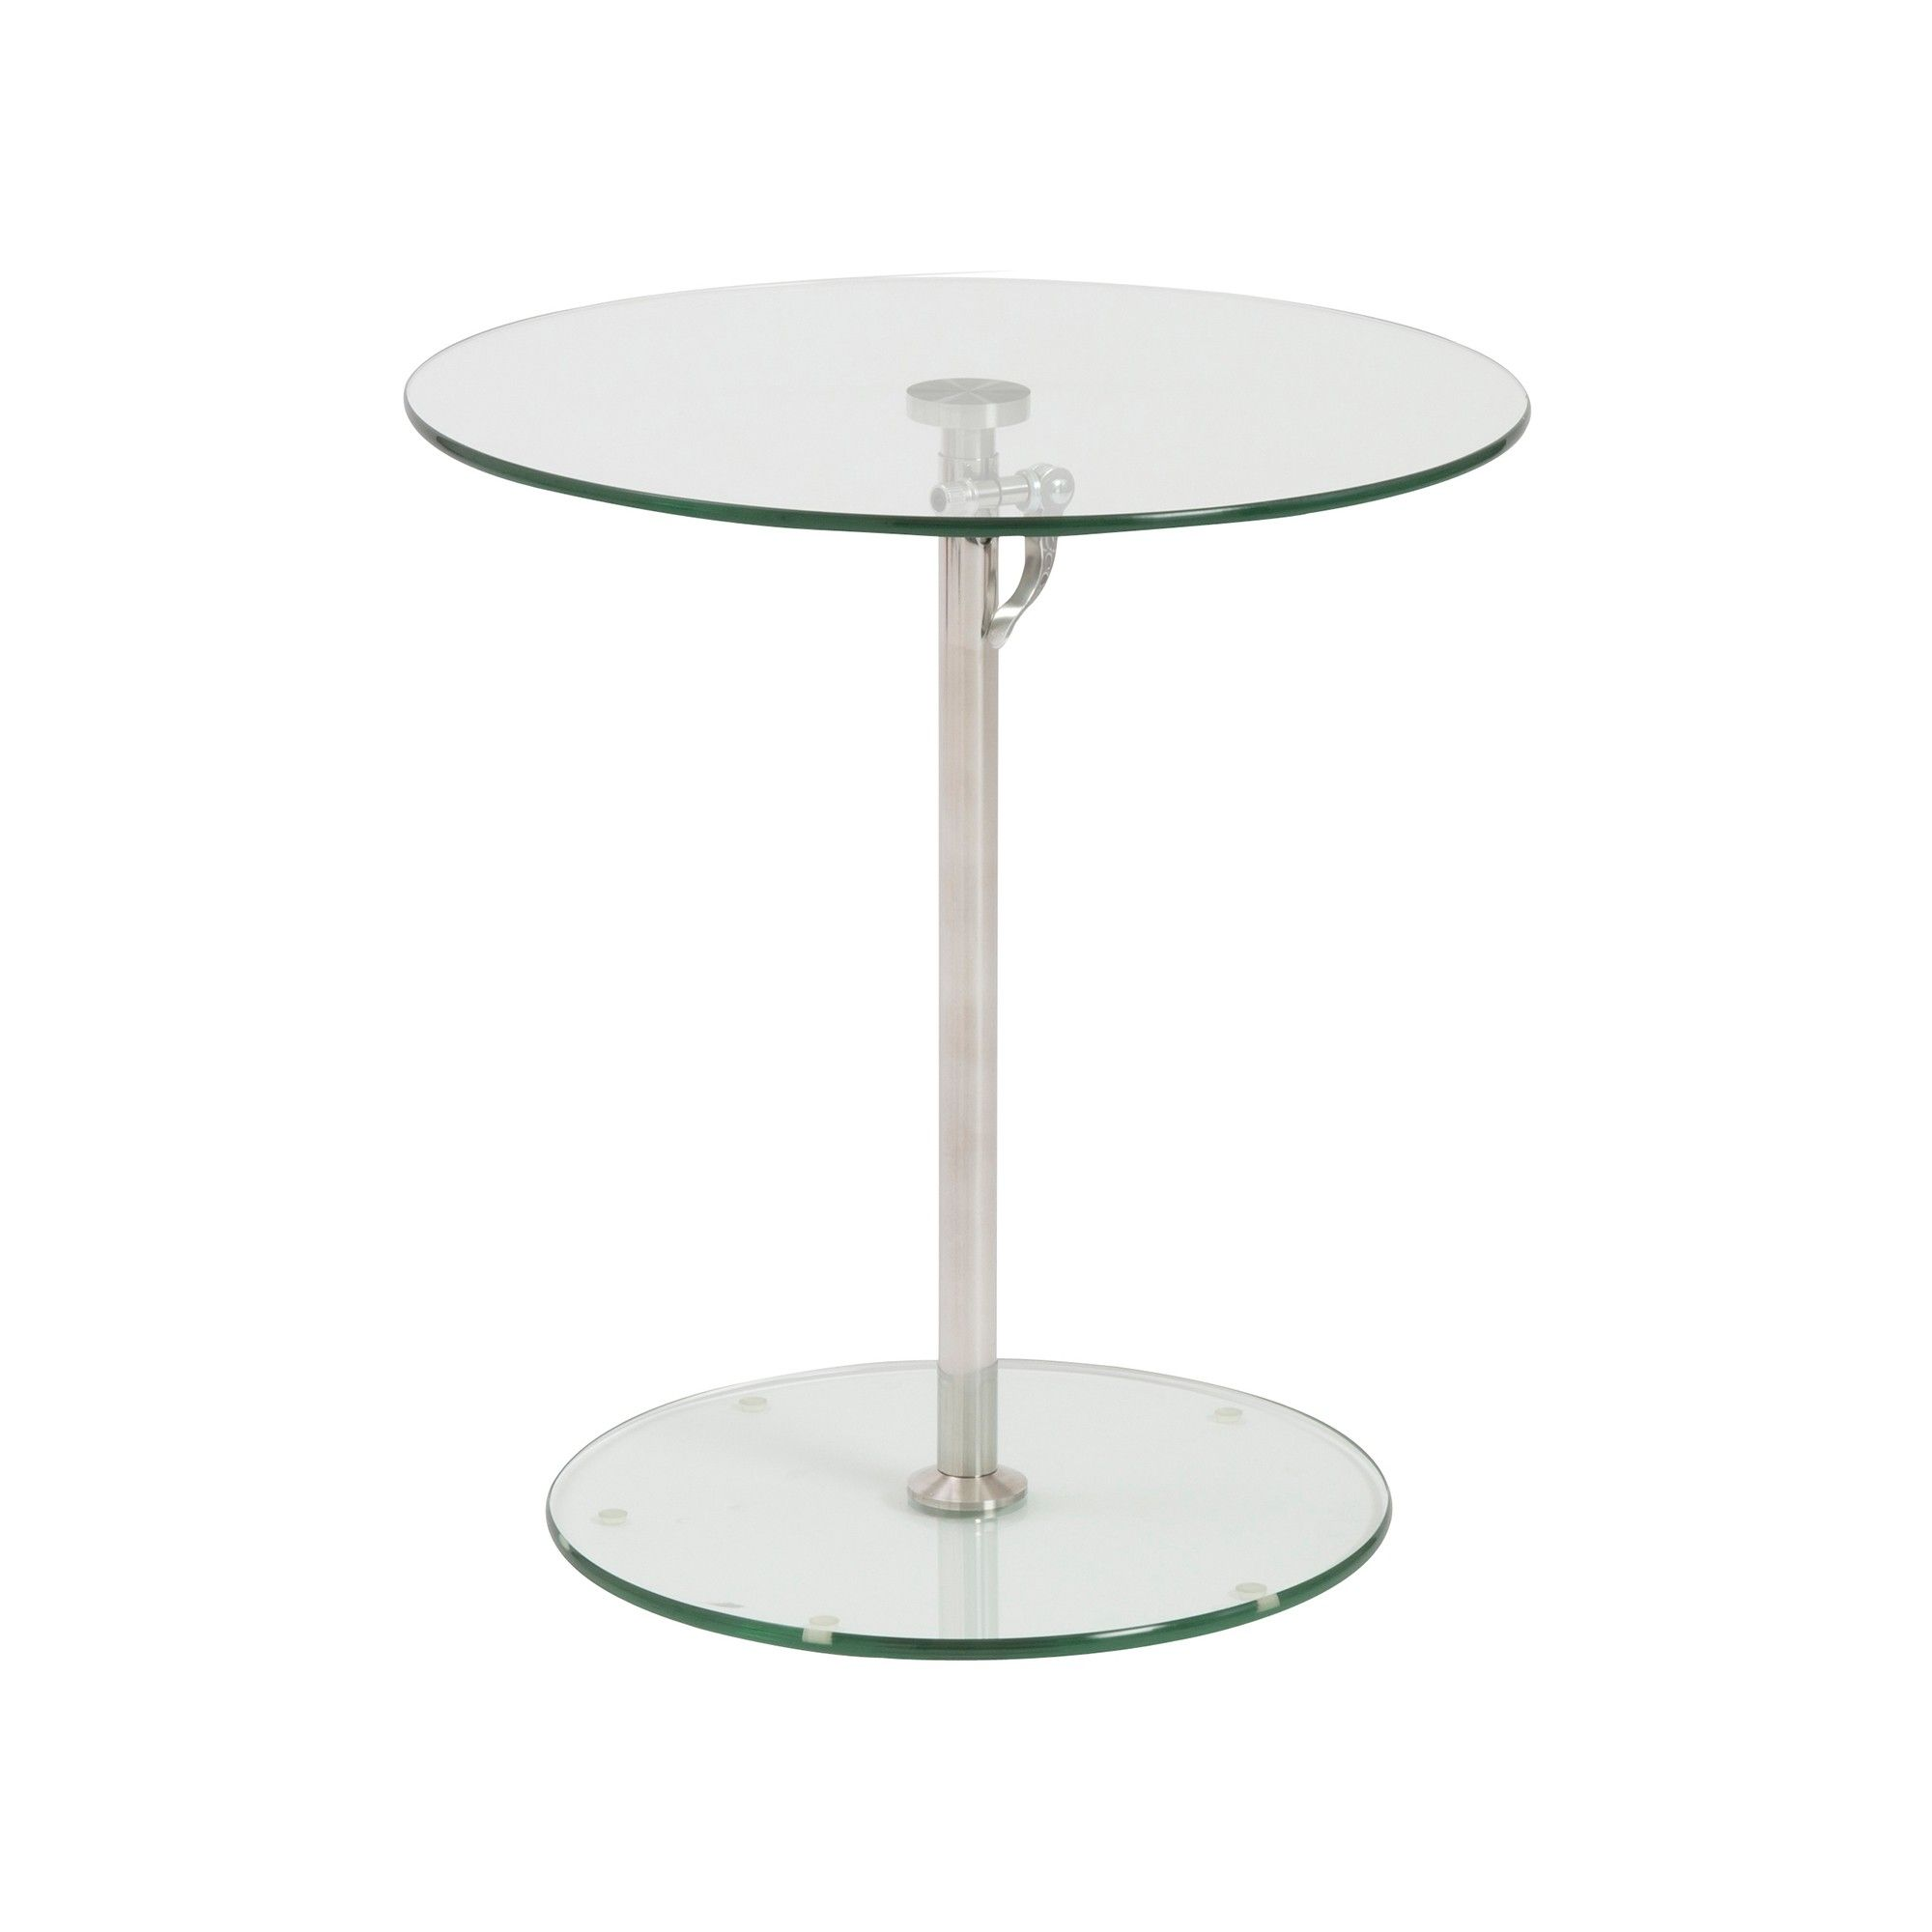 end table clear accent tables products glass target nautical home lighting large white wall clock themed gifts small round silver quilted runner patterns free christmas teal blue